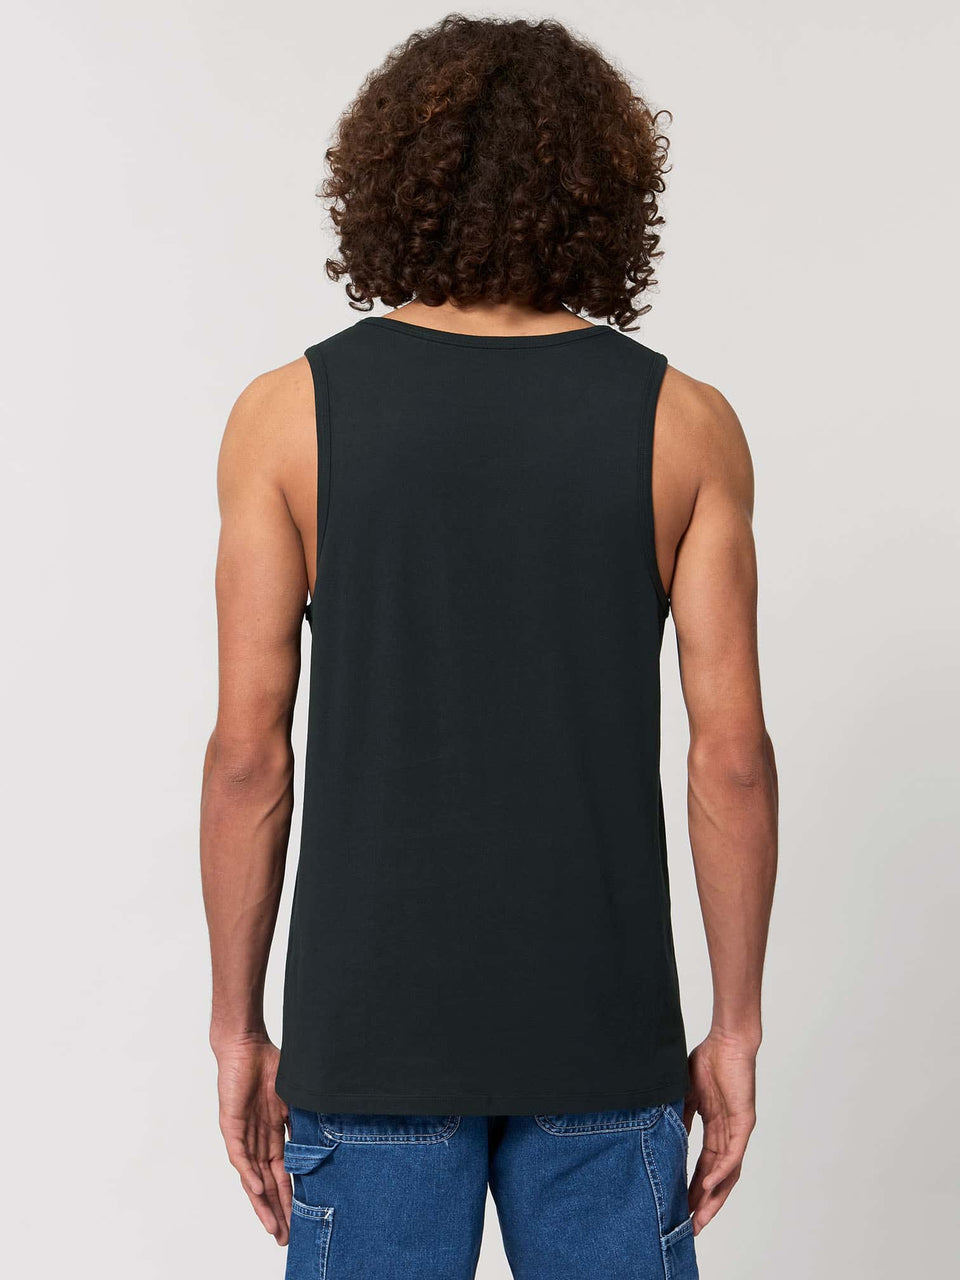 Butterfly Morph Made To Order Men Tank Top - Black